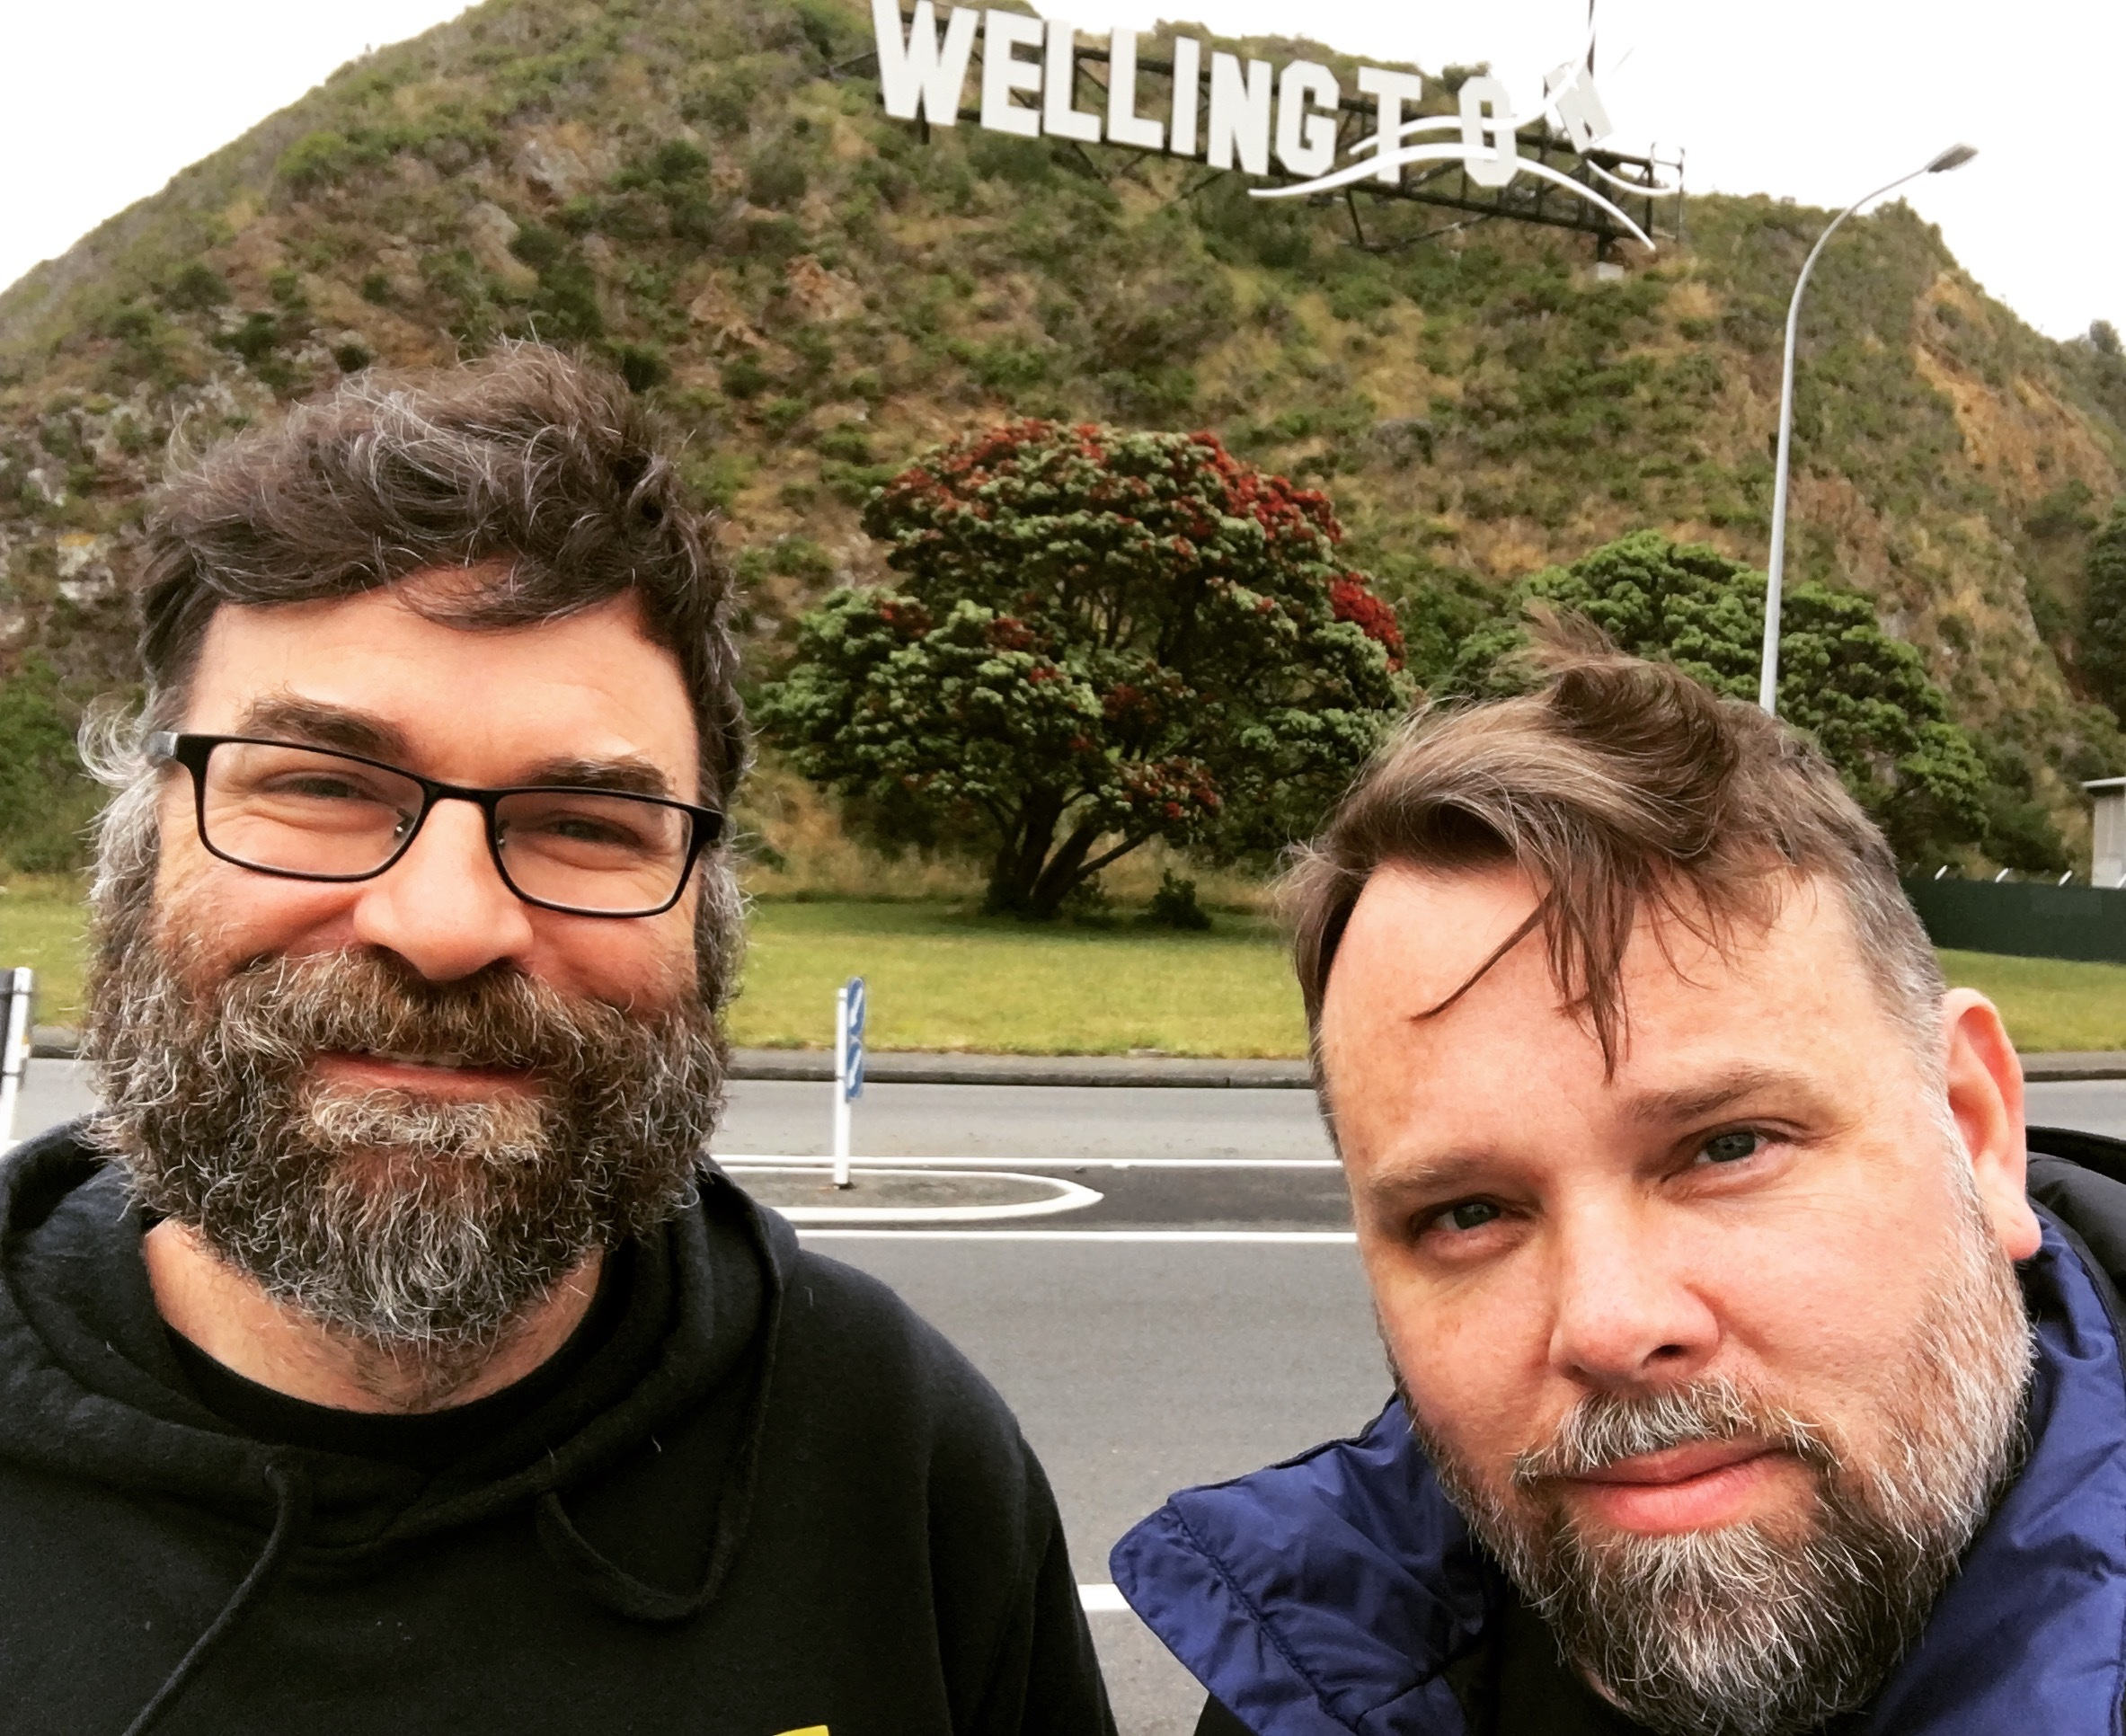 With Steve Barr in Wellington (I think).  Jan 2, 2017.